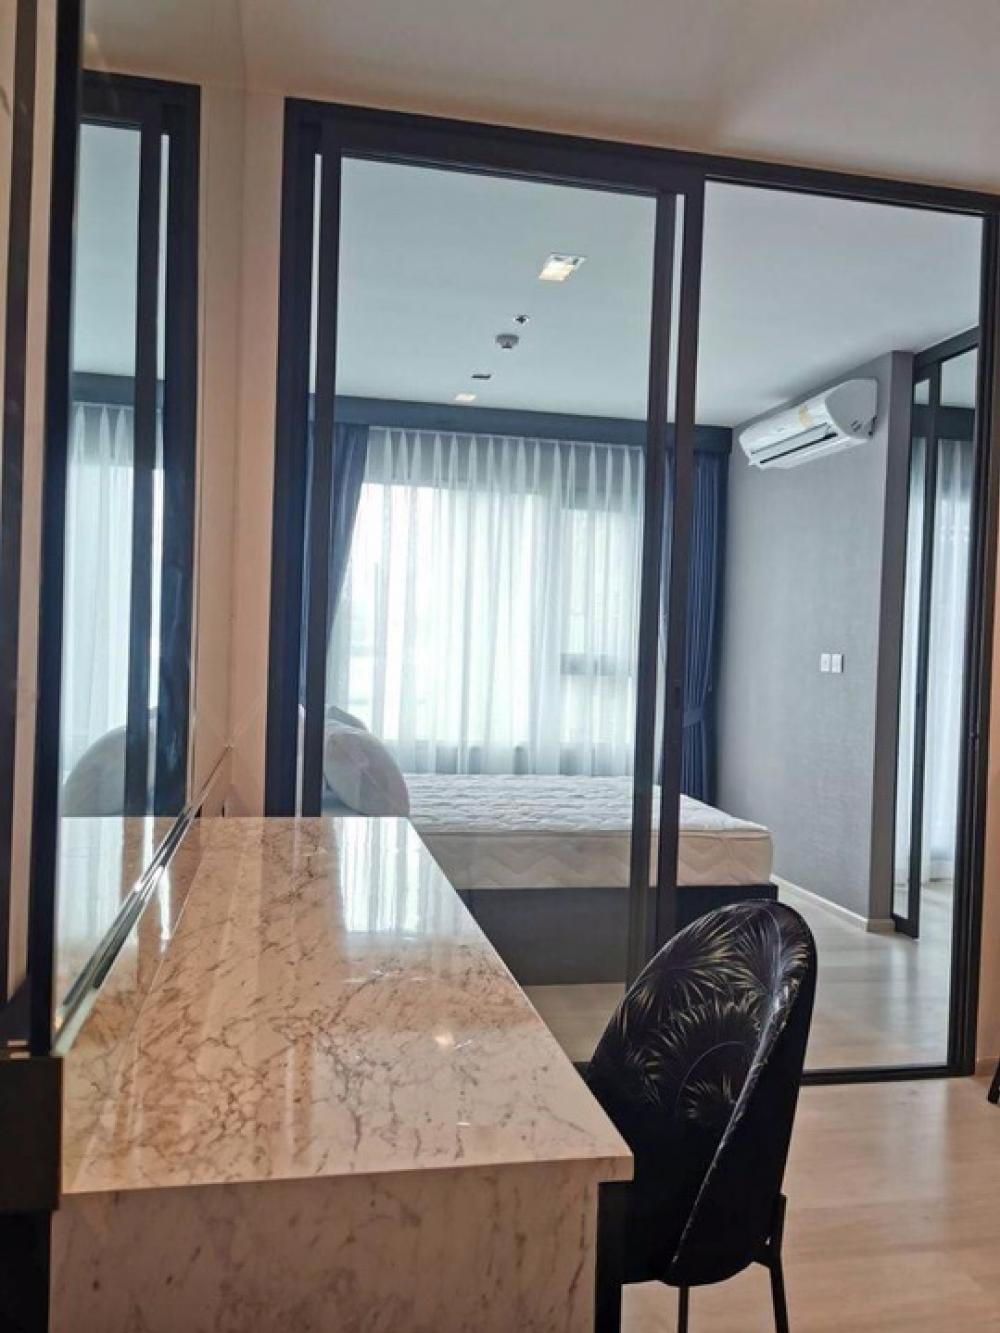 For RentCondoWitthayu,Ploenchit  ,Langsuan : NC-R236 new condo for rent, Life one Wireless project, near Central Embassy and BTS Ploenchit, 21st floor, luxury decoration, complete electrical appliances Carry the bag to move in. - Room 1 Bedroom Plus size 35 sq.m. - New room, never been there - 21st